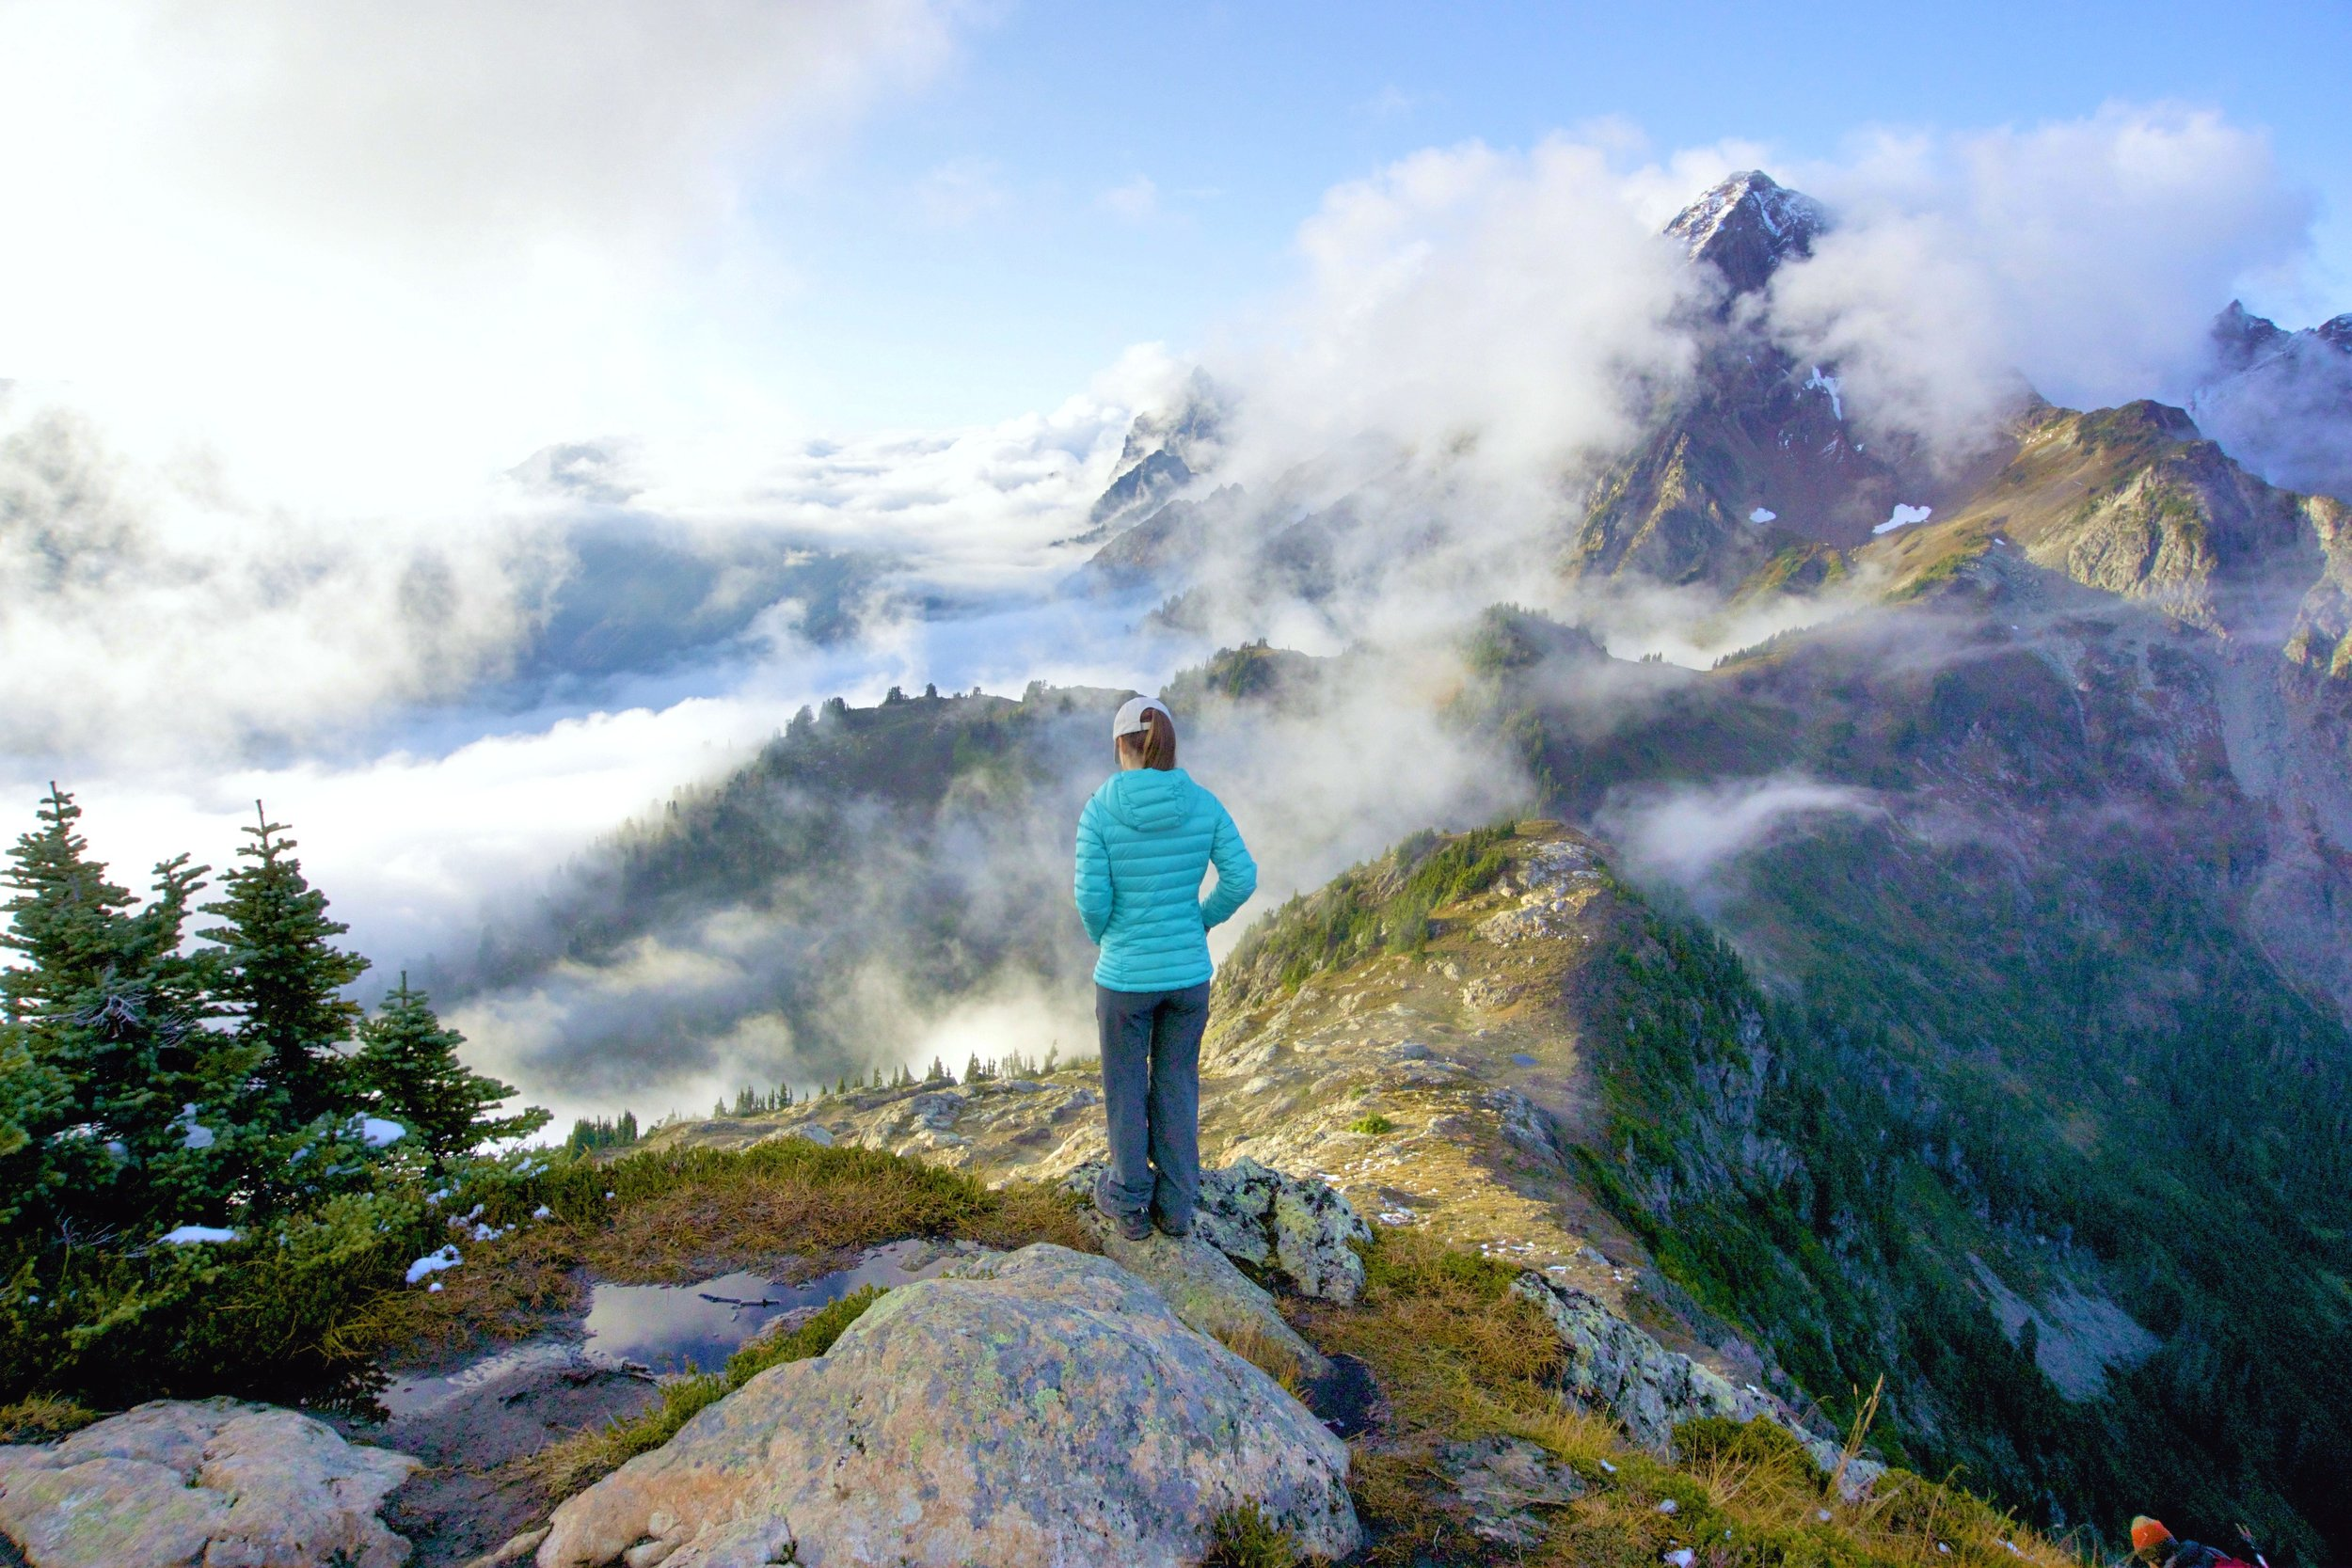 Backpacking in the North Cascades, Washington.